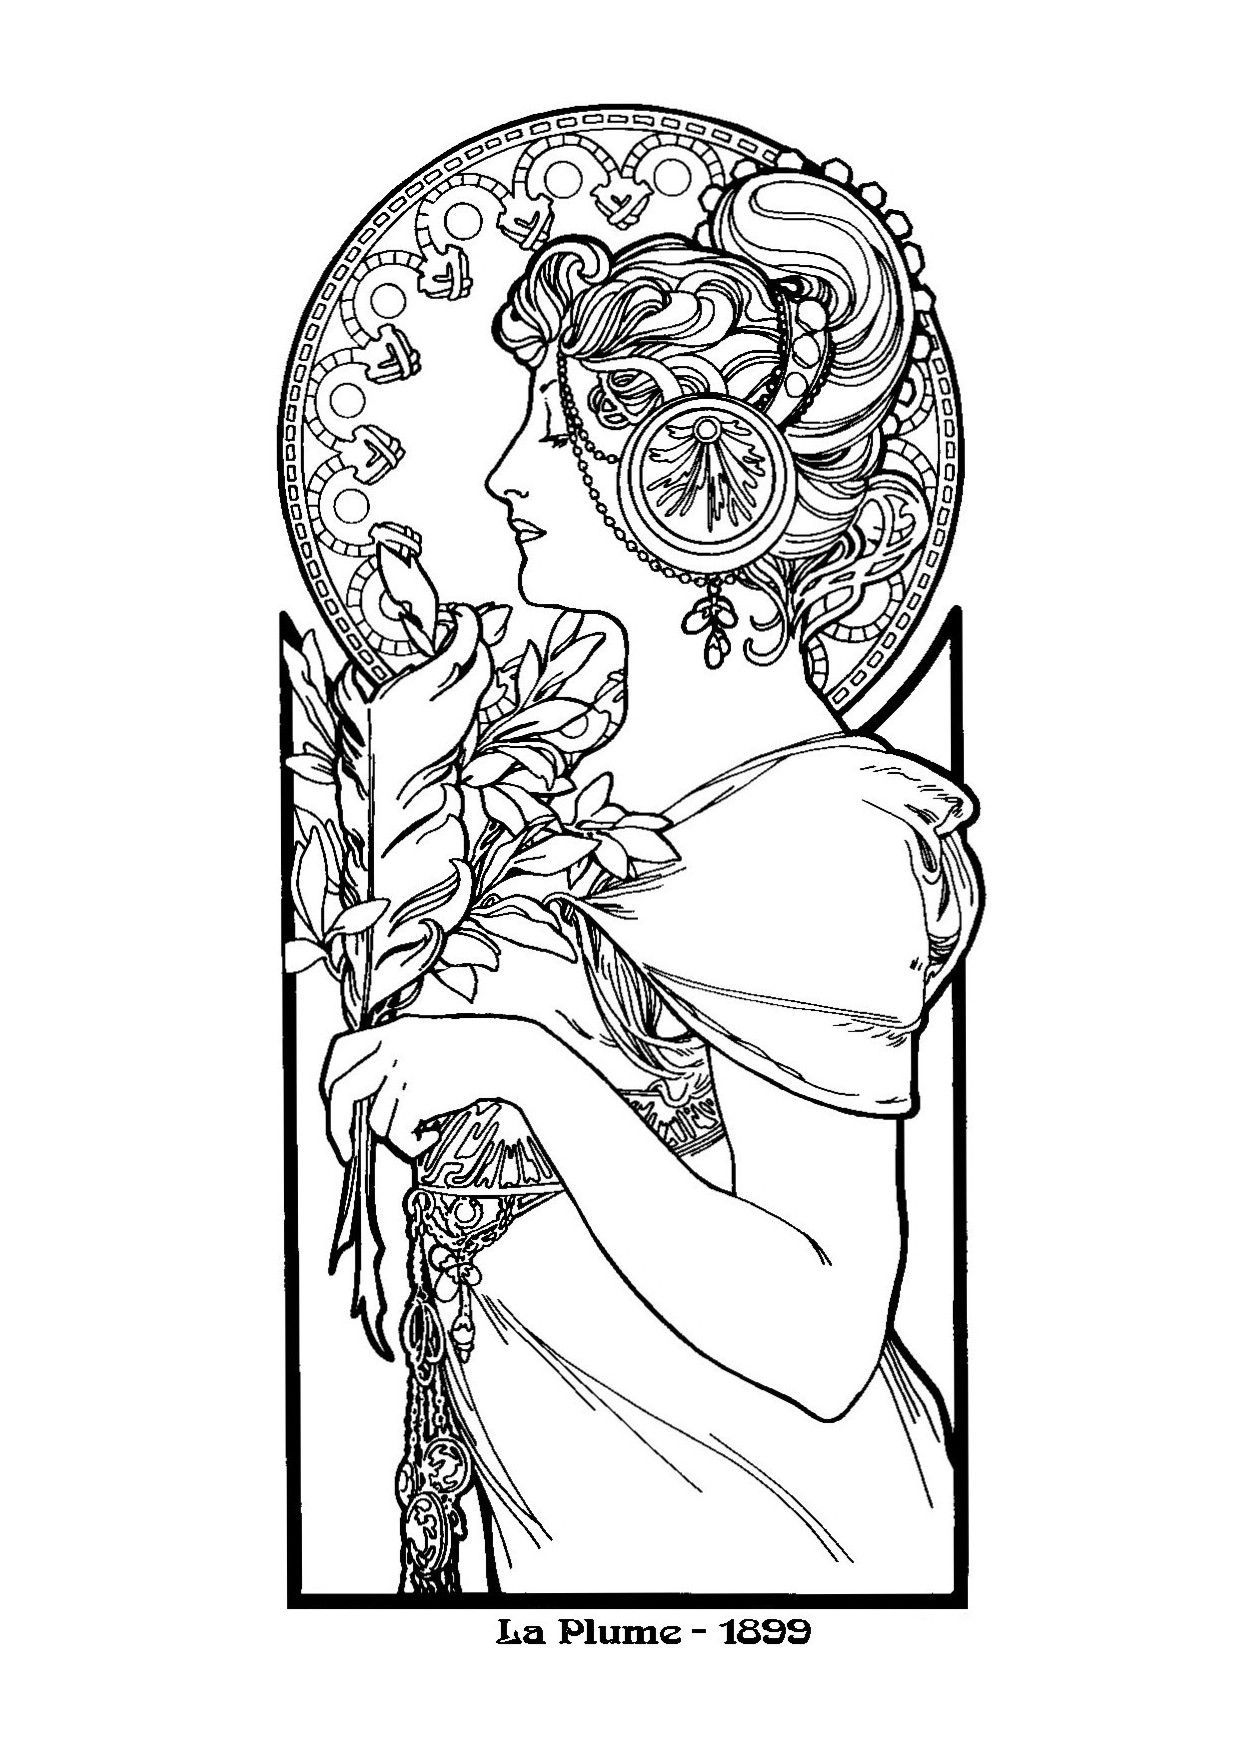 alphonse mucha art nouveau coloring pages for adults | Coloring ...